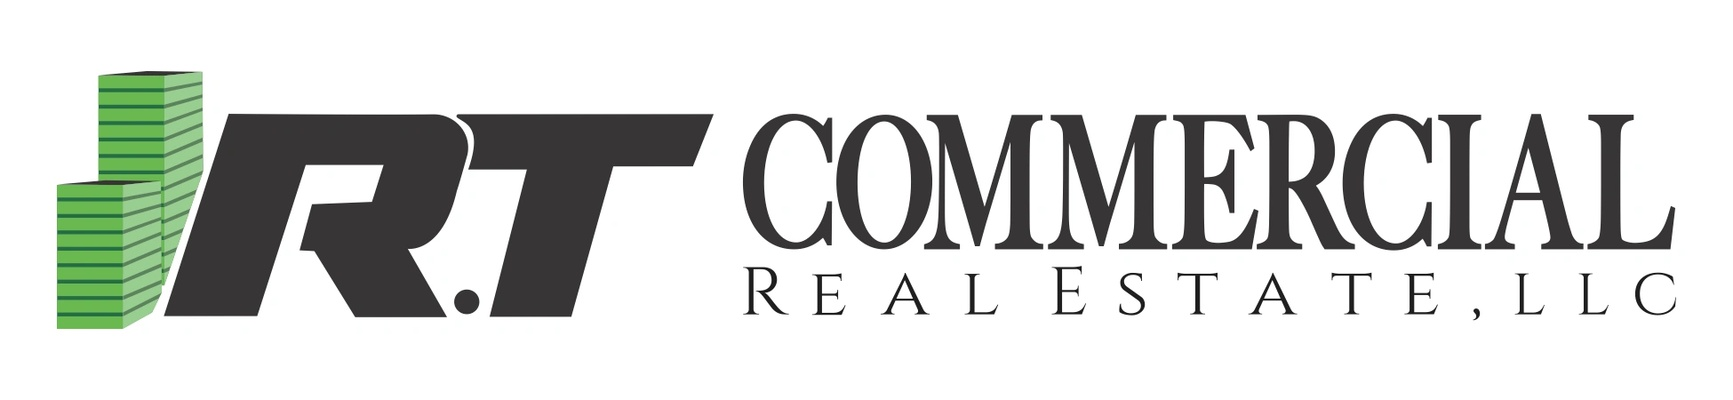 RT Commercial Real Estate